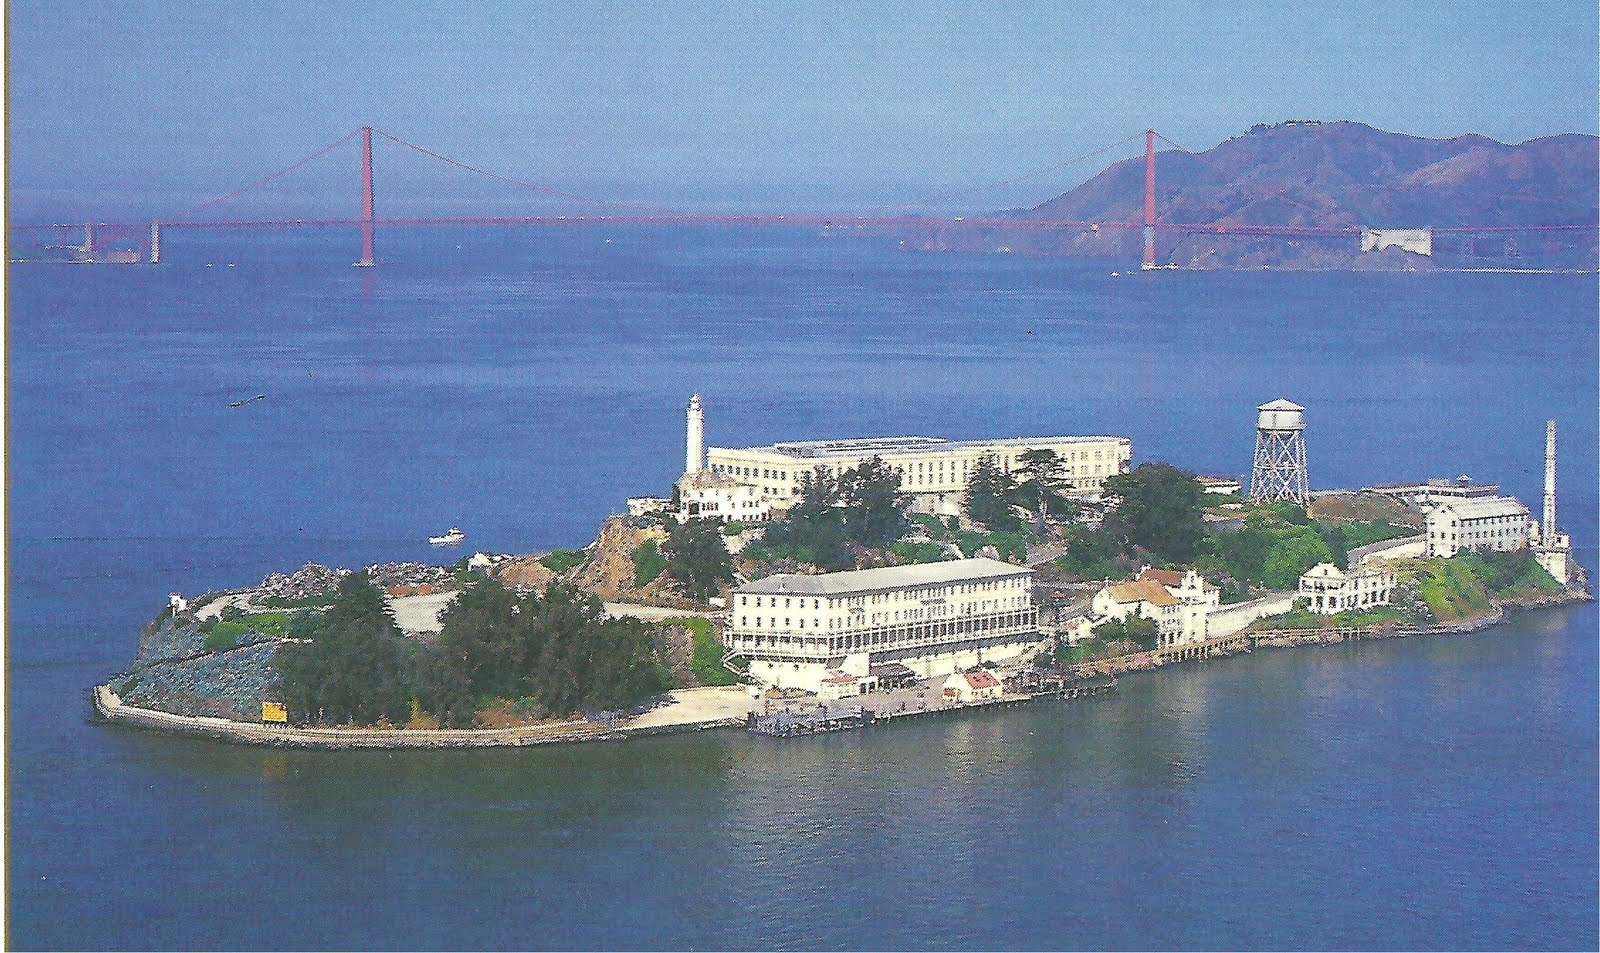 Alcatraz Guards 1930 http://alslighthouses.blogspot.com/2011_05_01_archive.html